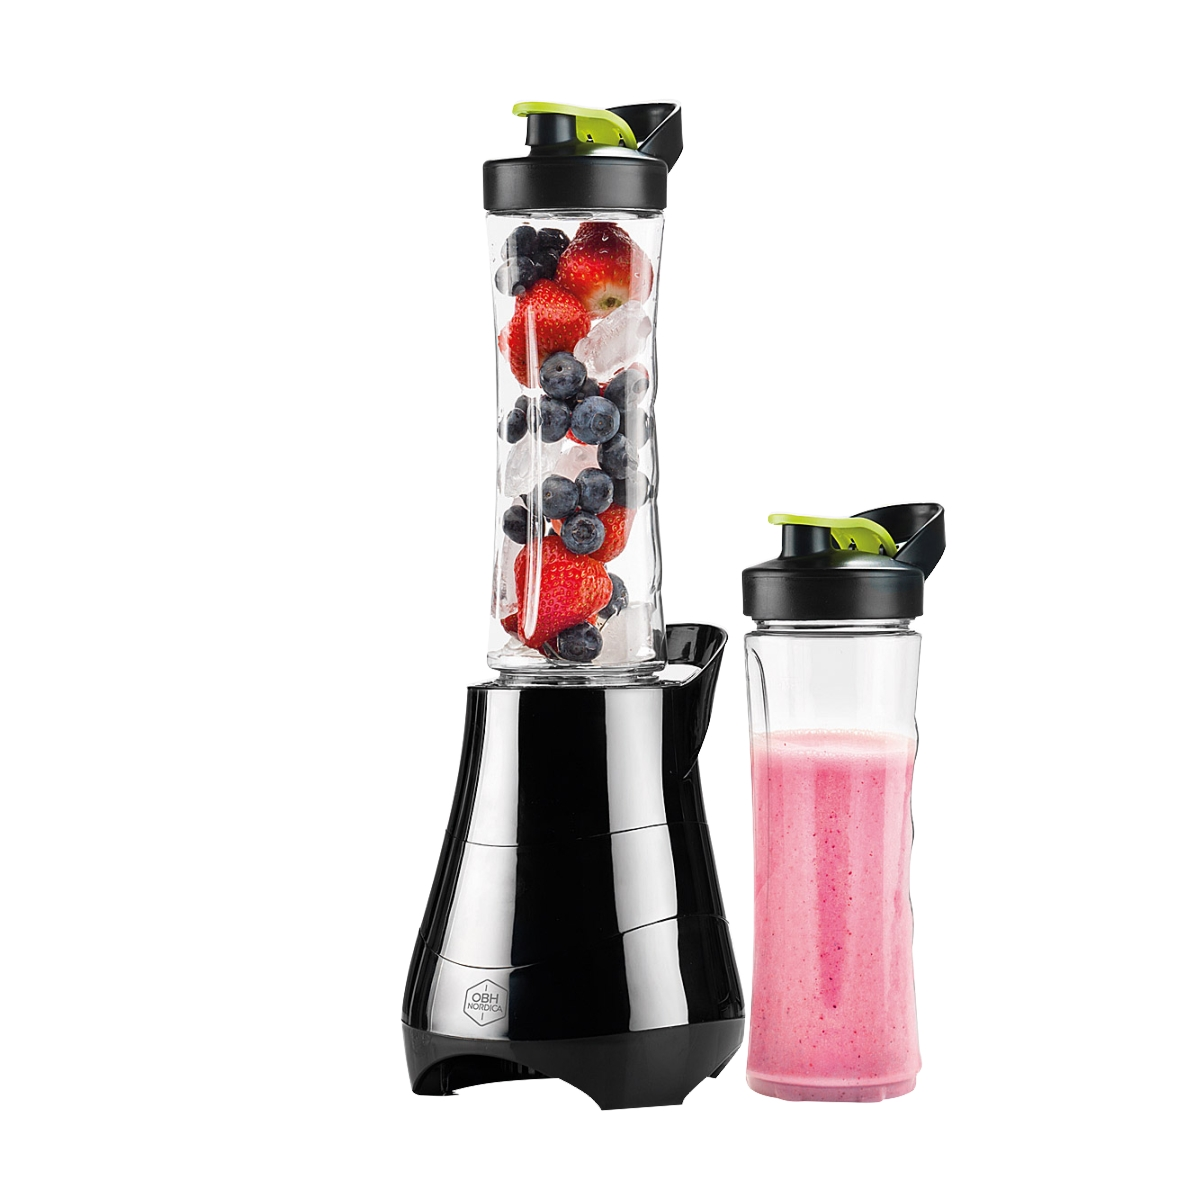 Image of OBH Nordica - Smoothie Twister